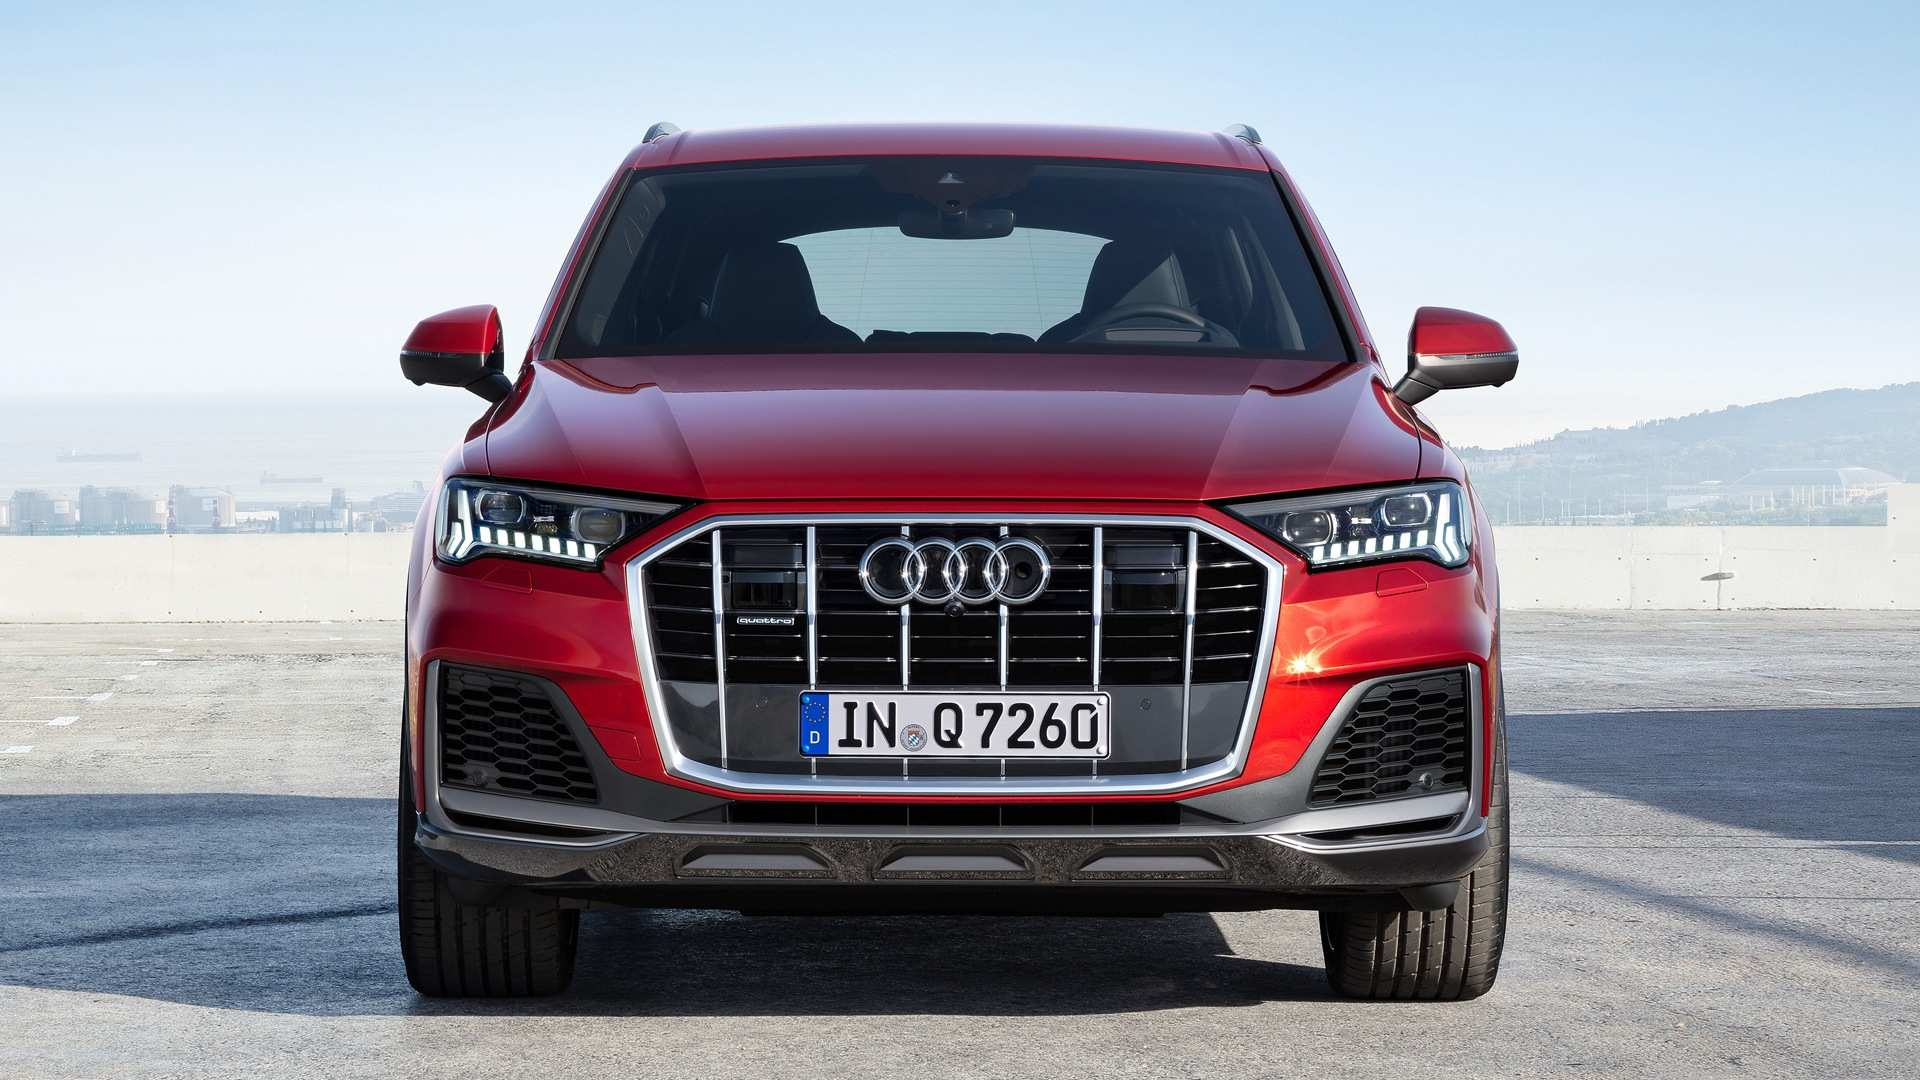 20 The Best When Will The 2020 Audi Q7 Be Available Rumors